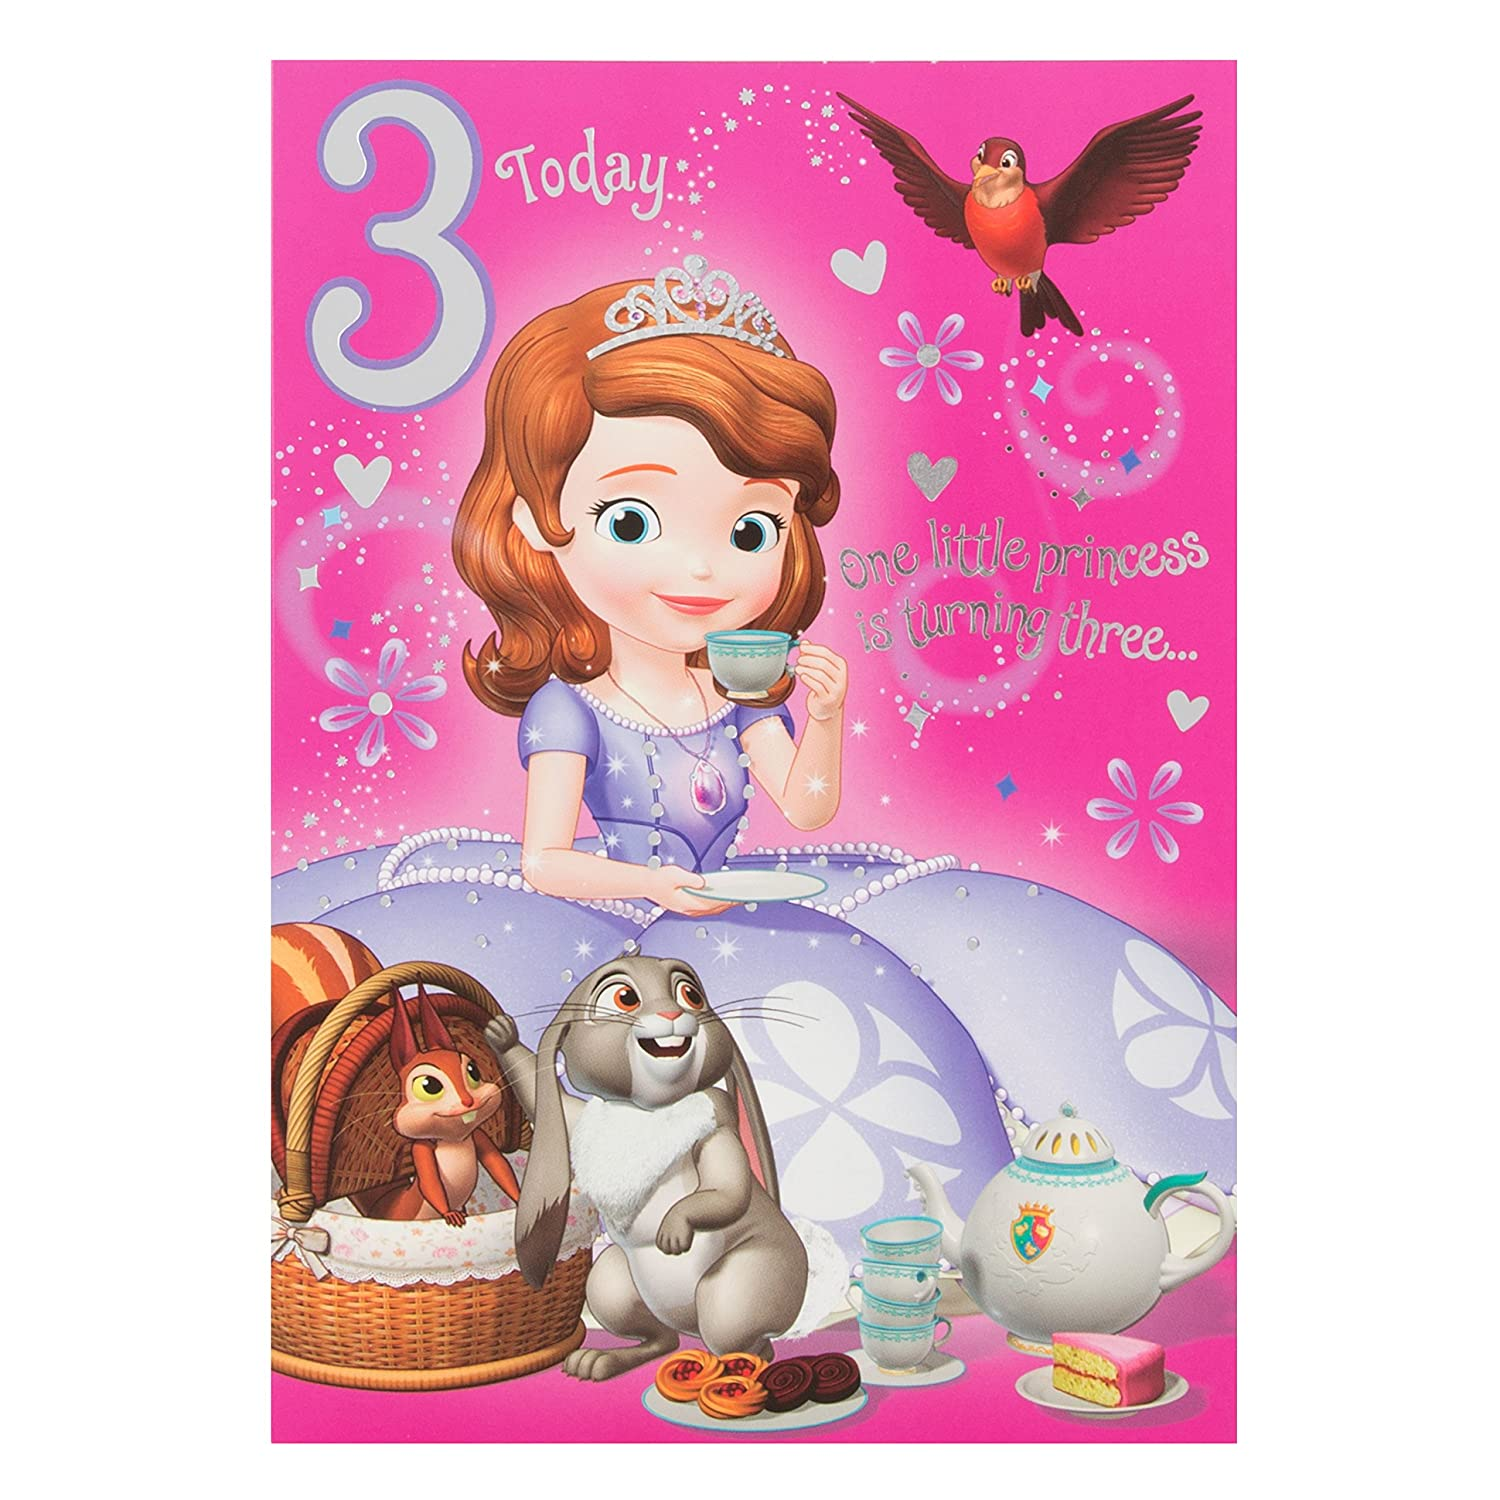 Disney Princess Birthday Card halloween clearance decorations